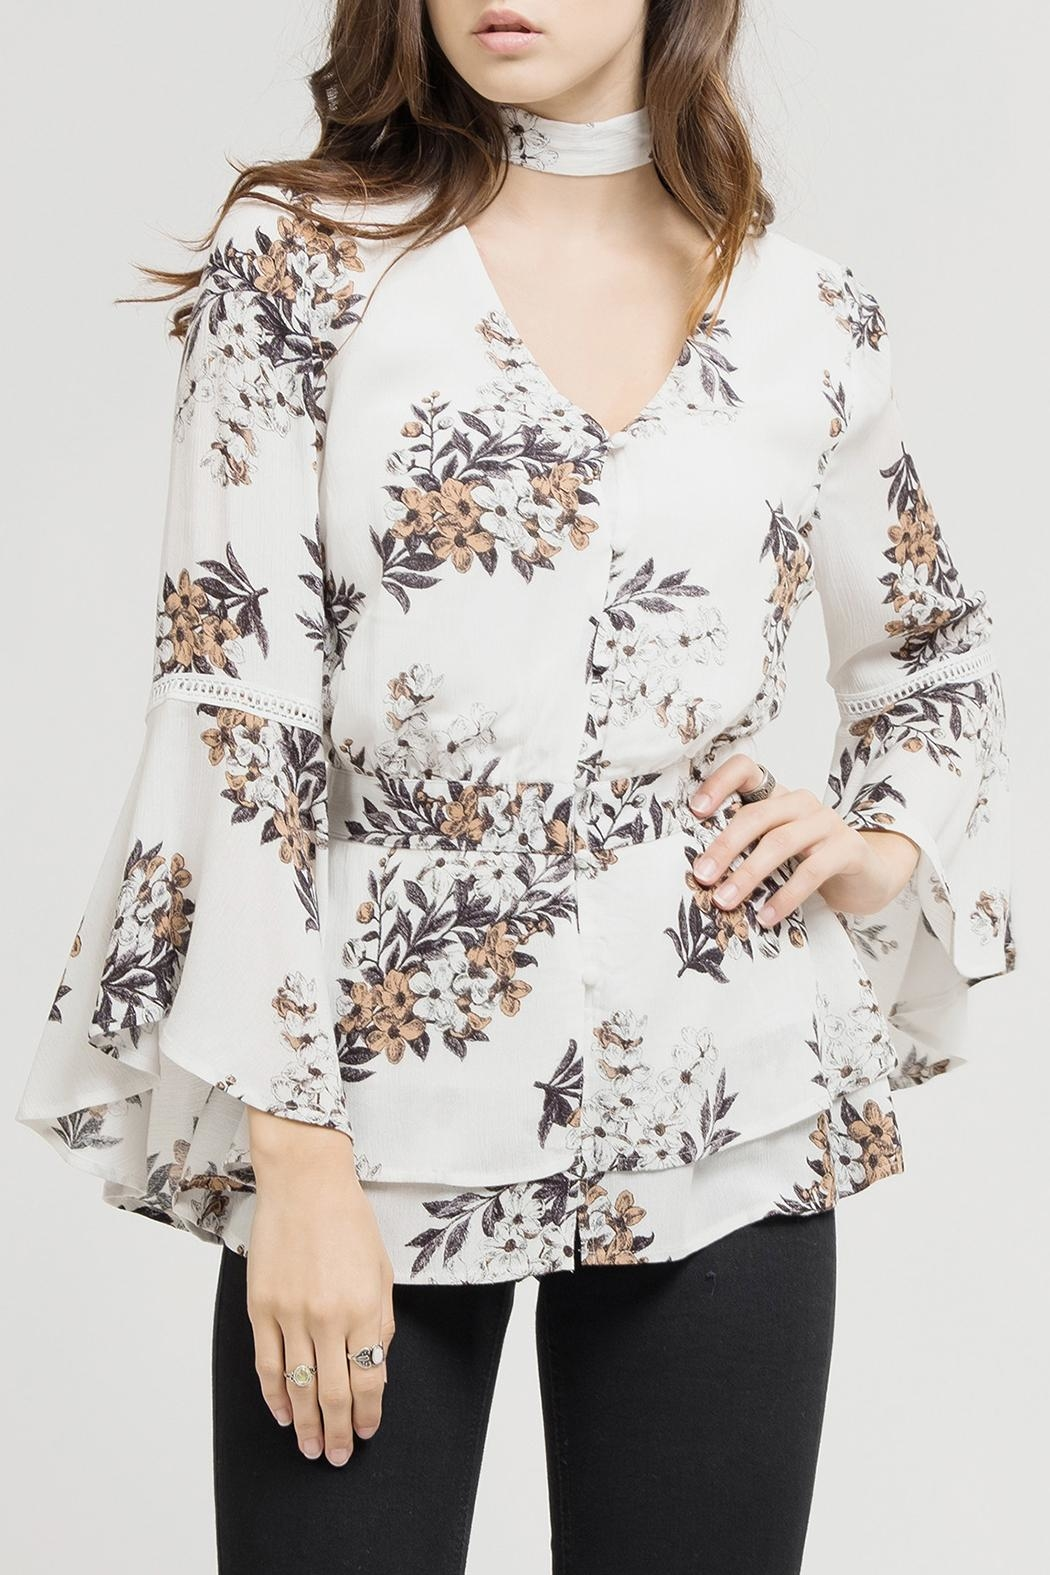 Blu Pepper White Floral Blouse - Main Image